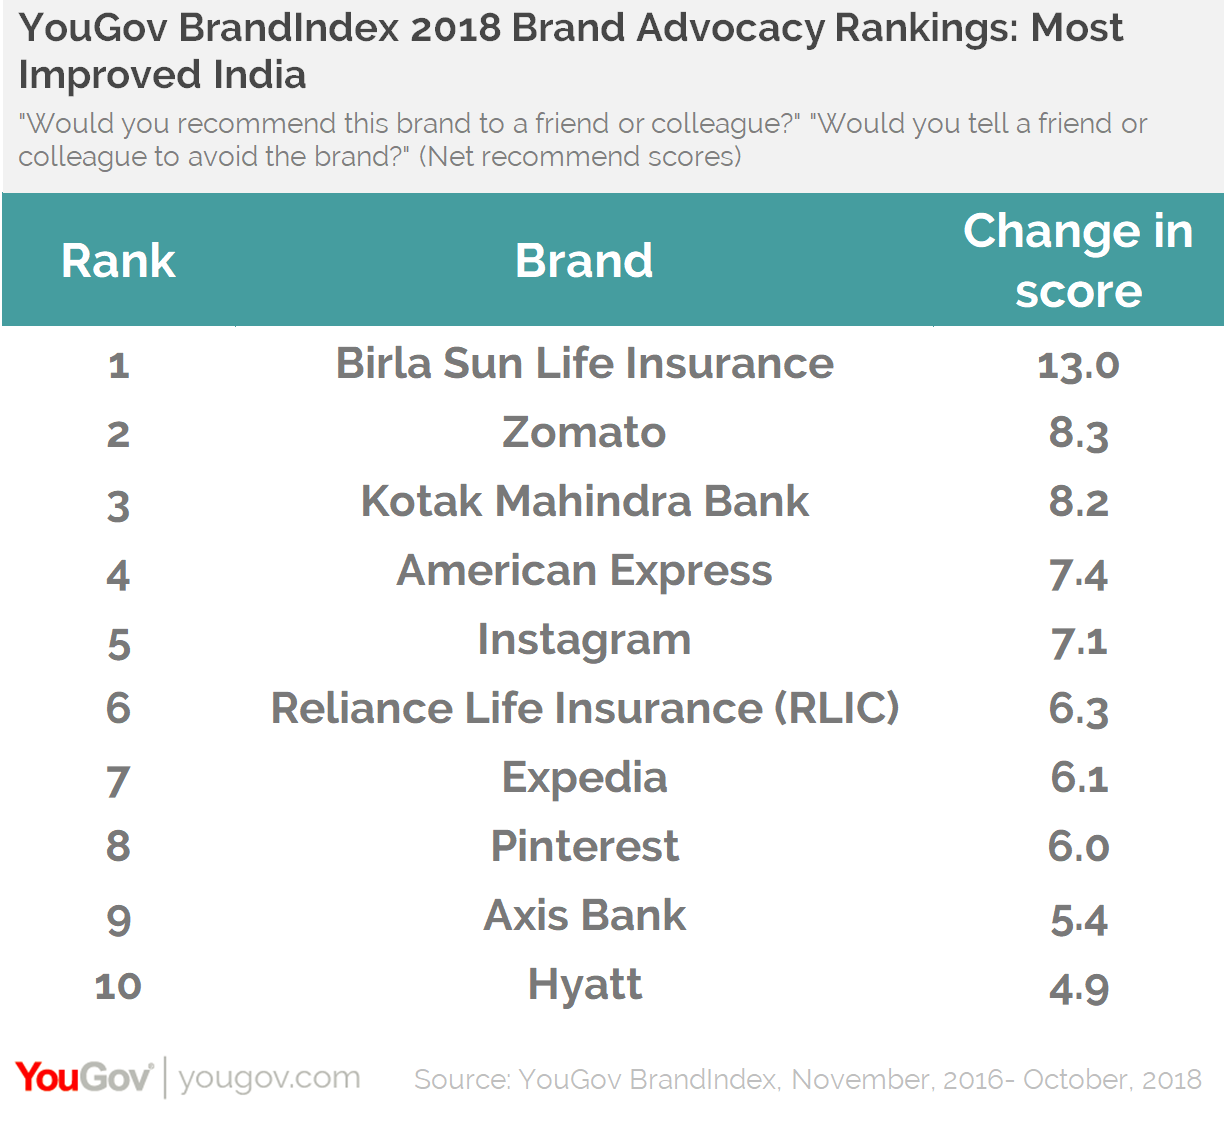 YouGov BrandIndex 2018 Brand Advocacy Rankings: Most Improved India